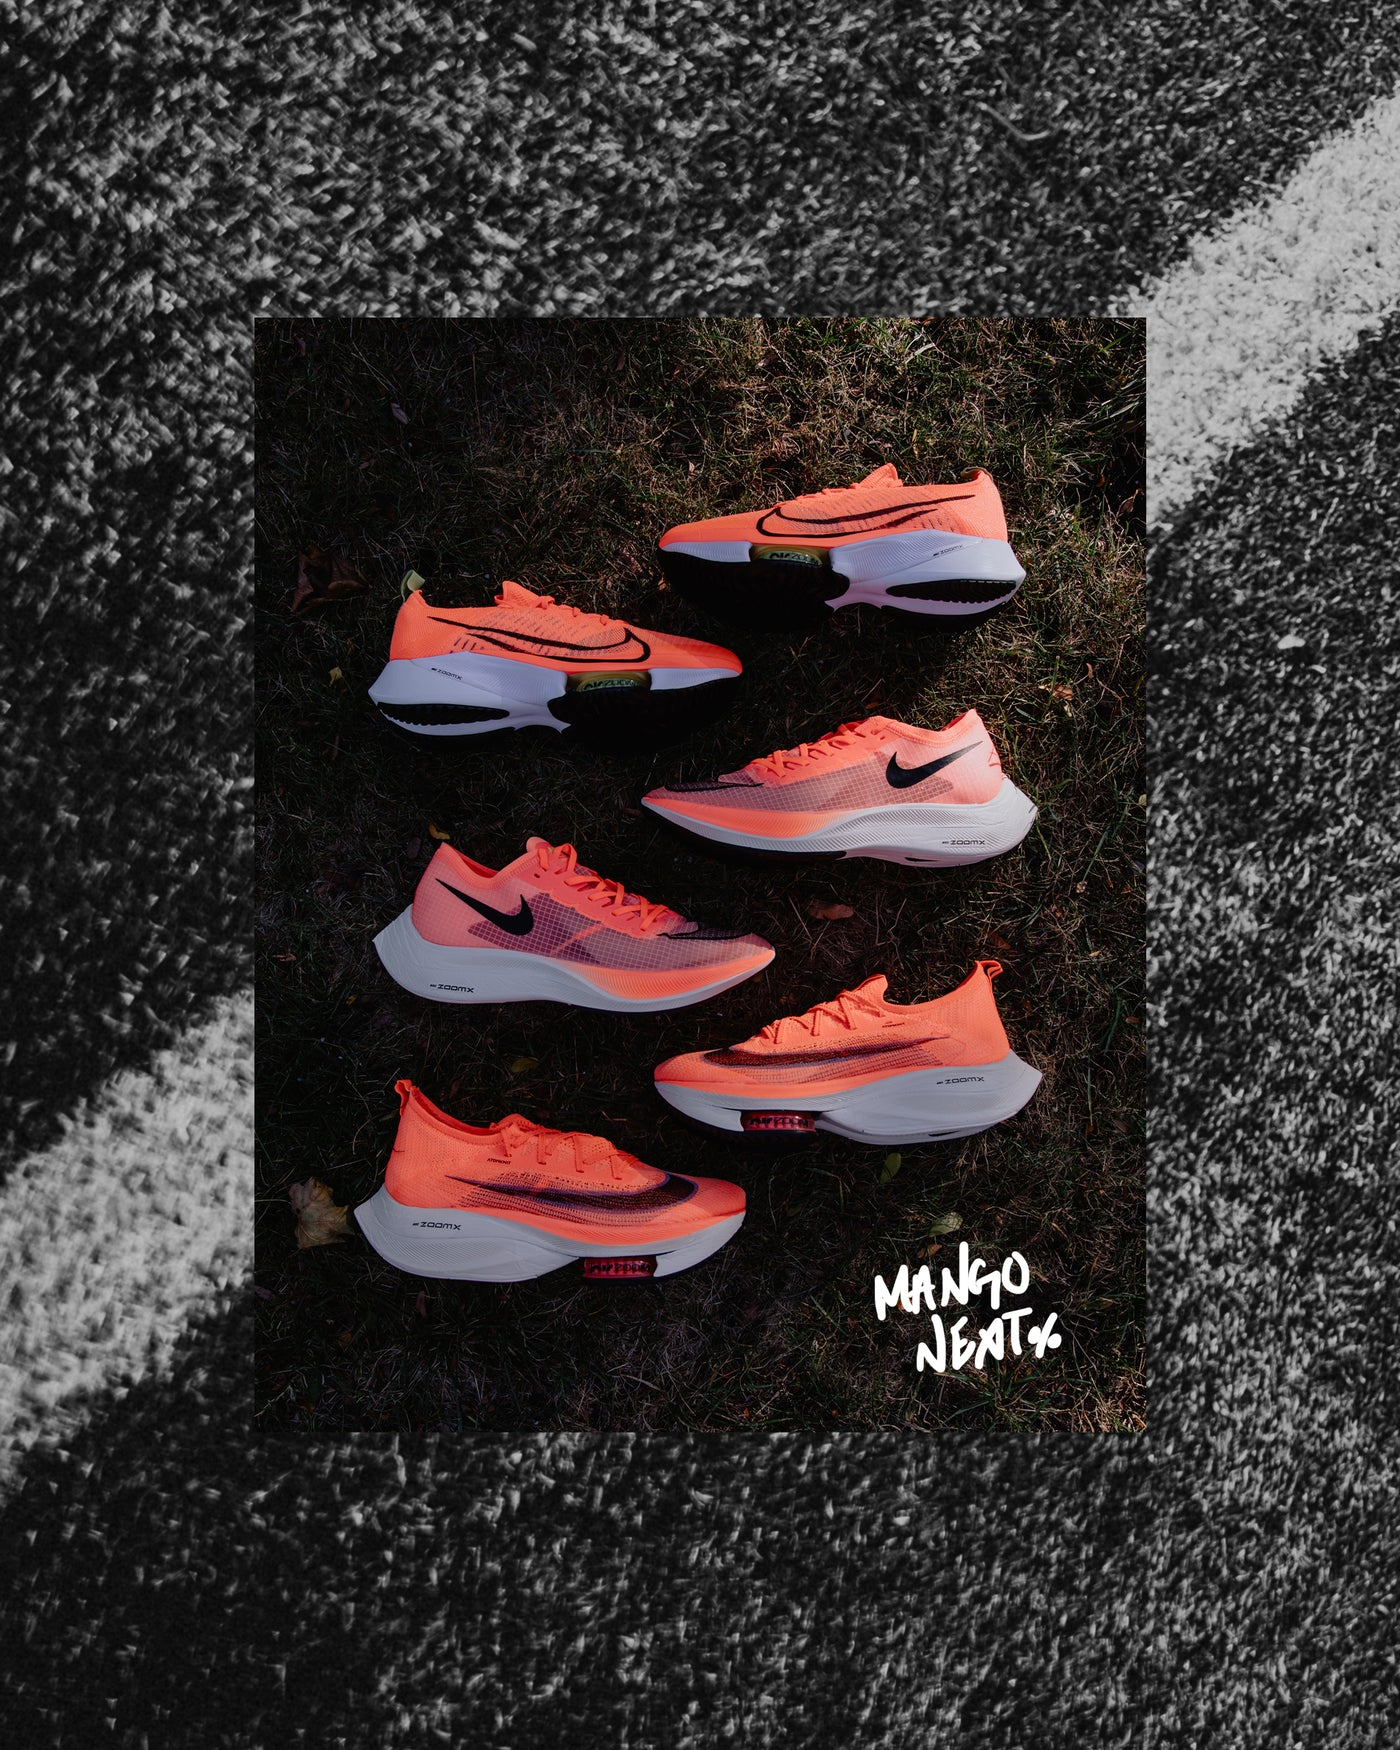 RELEASE DAY: Nike Bright Mango Fast Pack